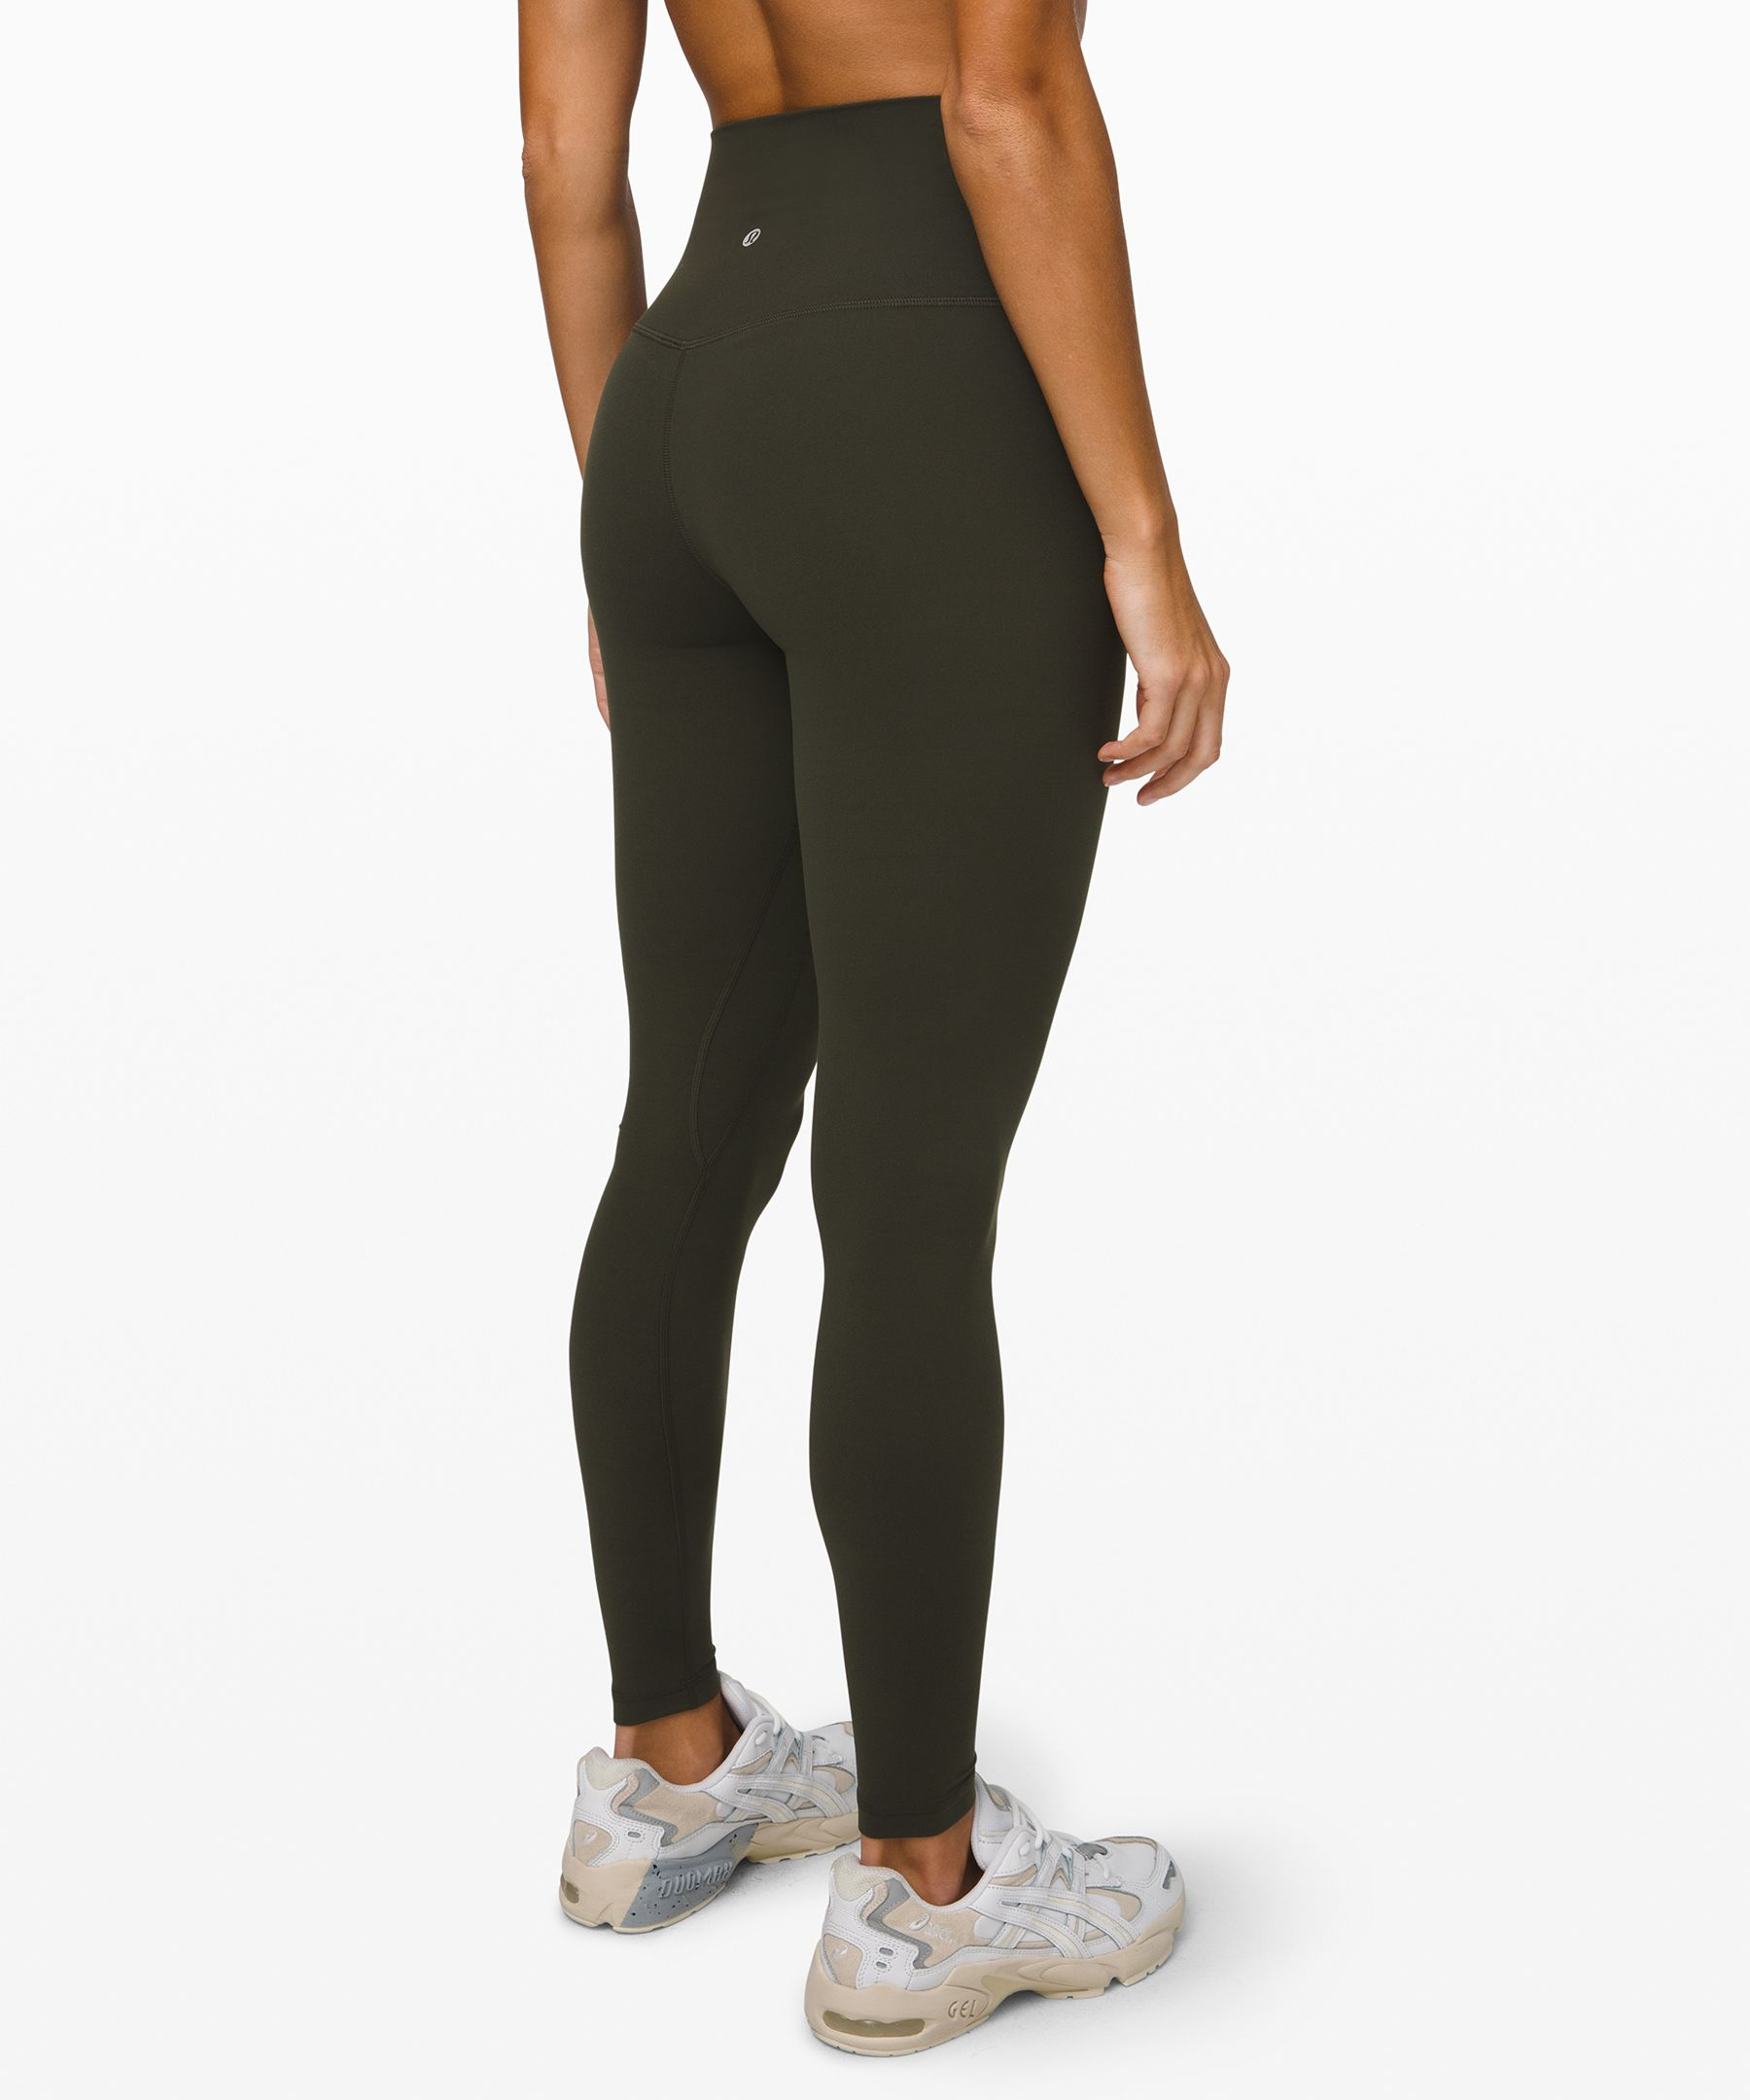 Lululemon Womens Leggings Sale Off 71 Best Deals Online